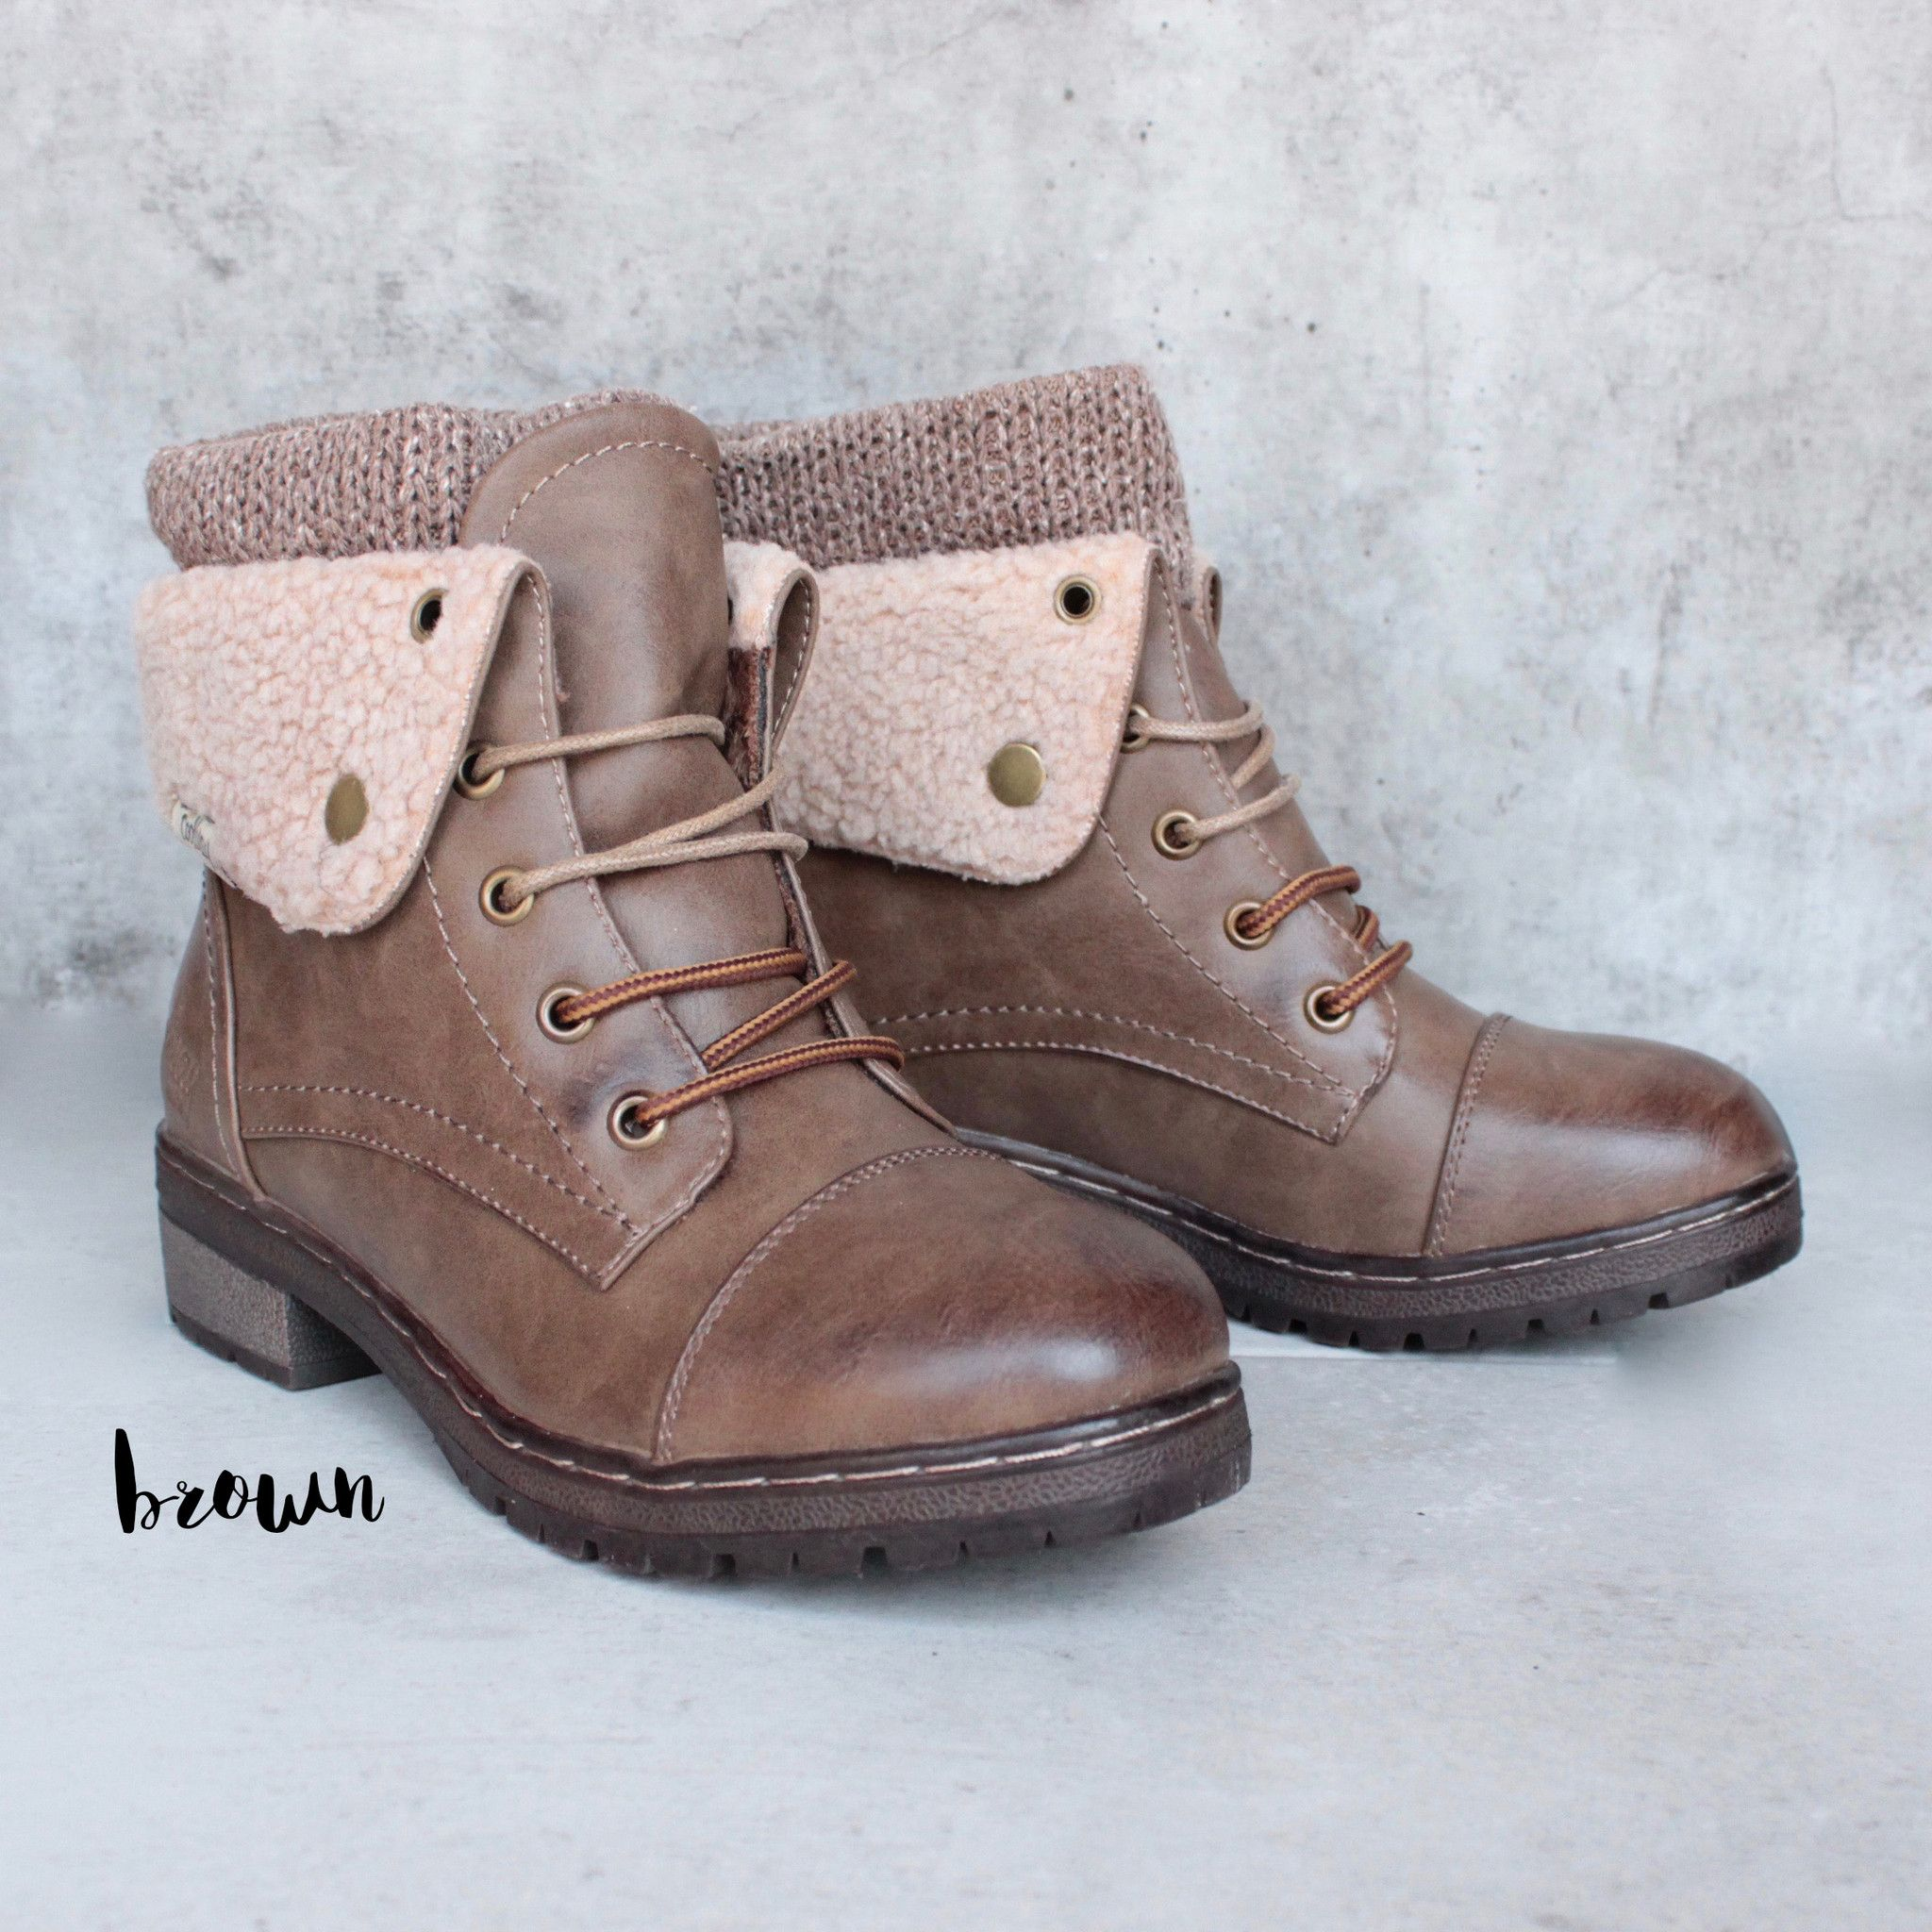 Coolway - bring leather knit sweater cuff ankle boots (more colors ...